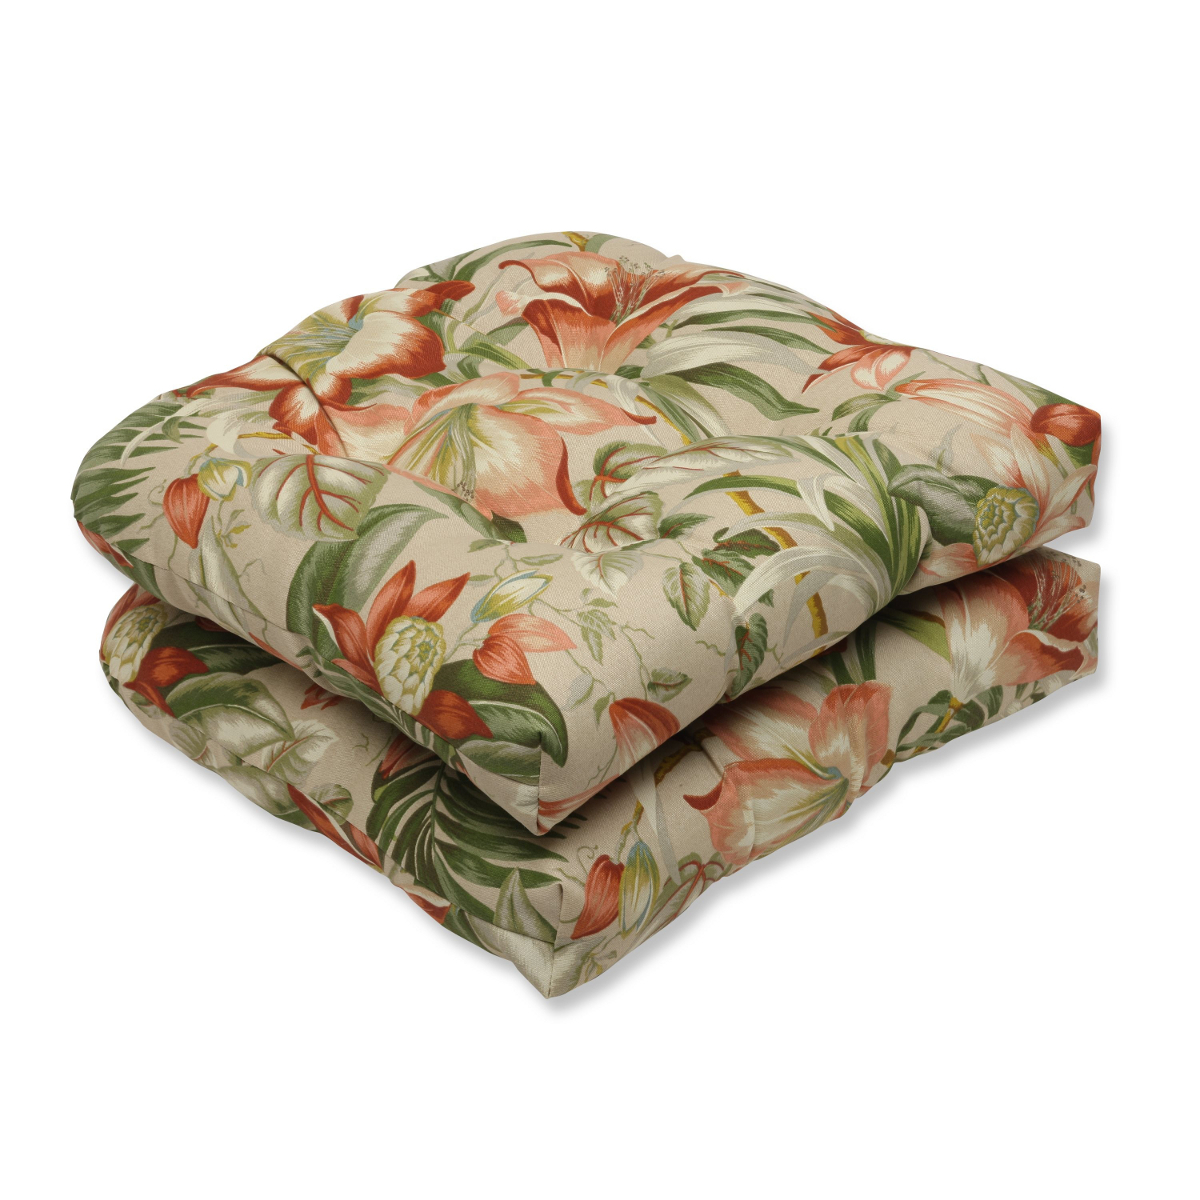 Set of 2 Green, Tan and Coral Tropical Garden Decorative Outdoor Patio Wicker Chair Seat Cushions 19""